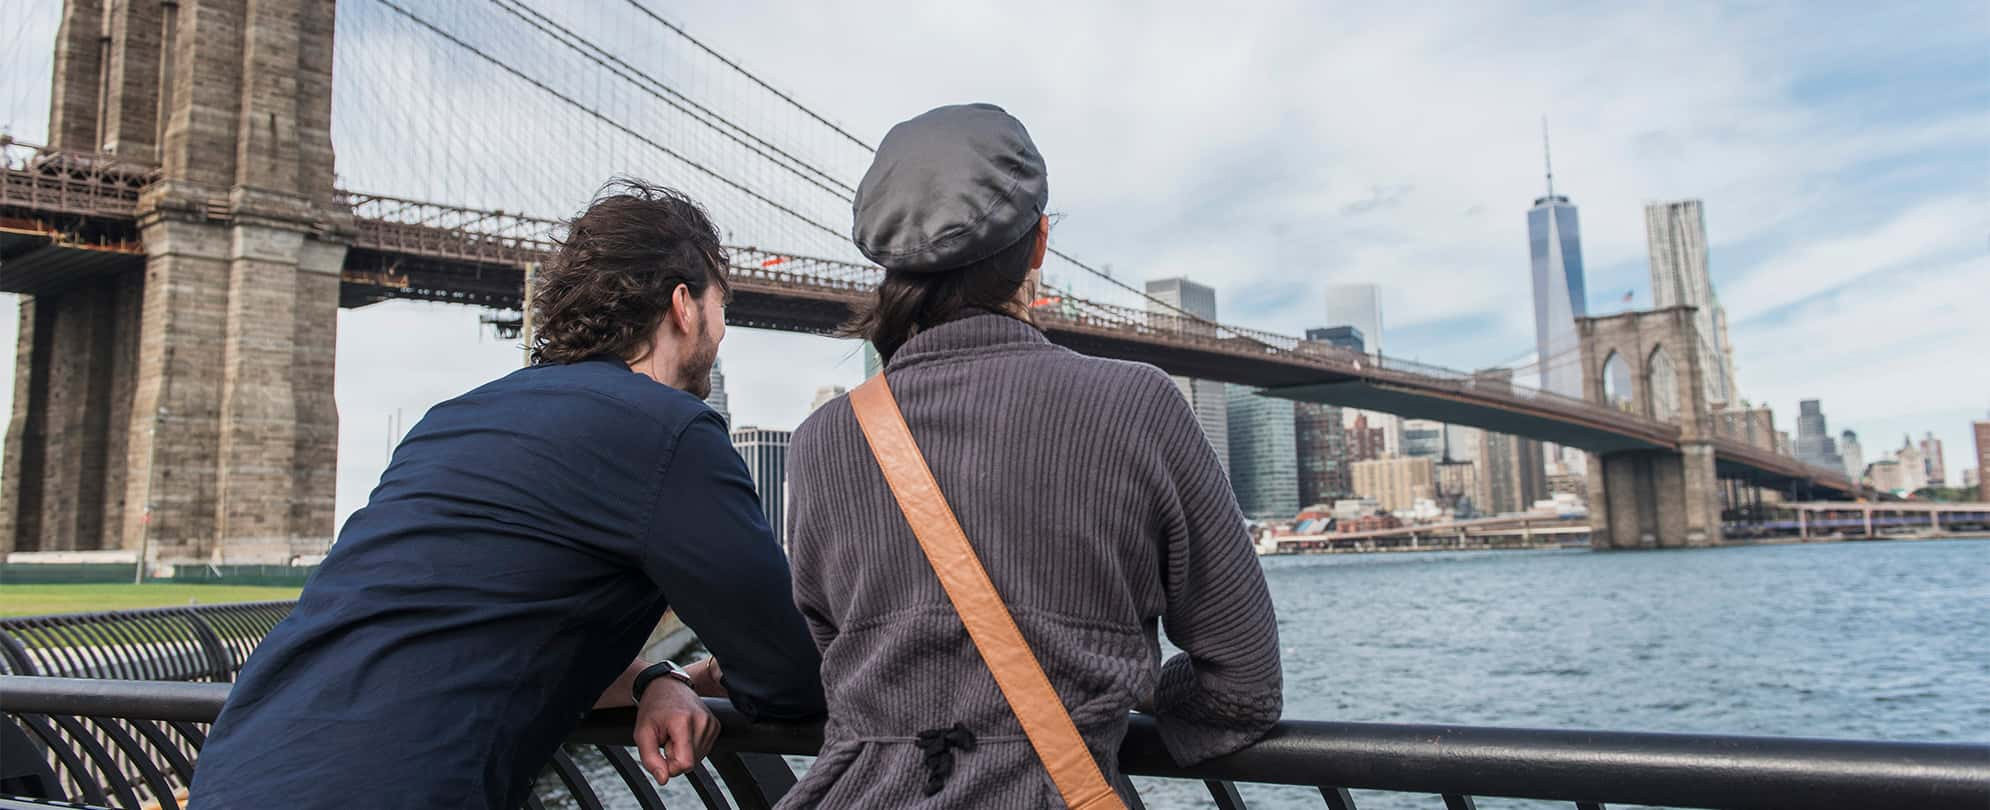 Man and woman leaned over railing, taking in the view of the New York City skyline and Brooklyn Bridge.